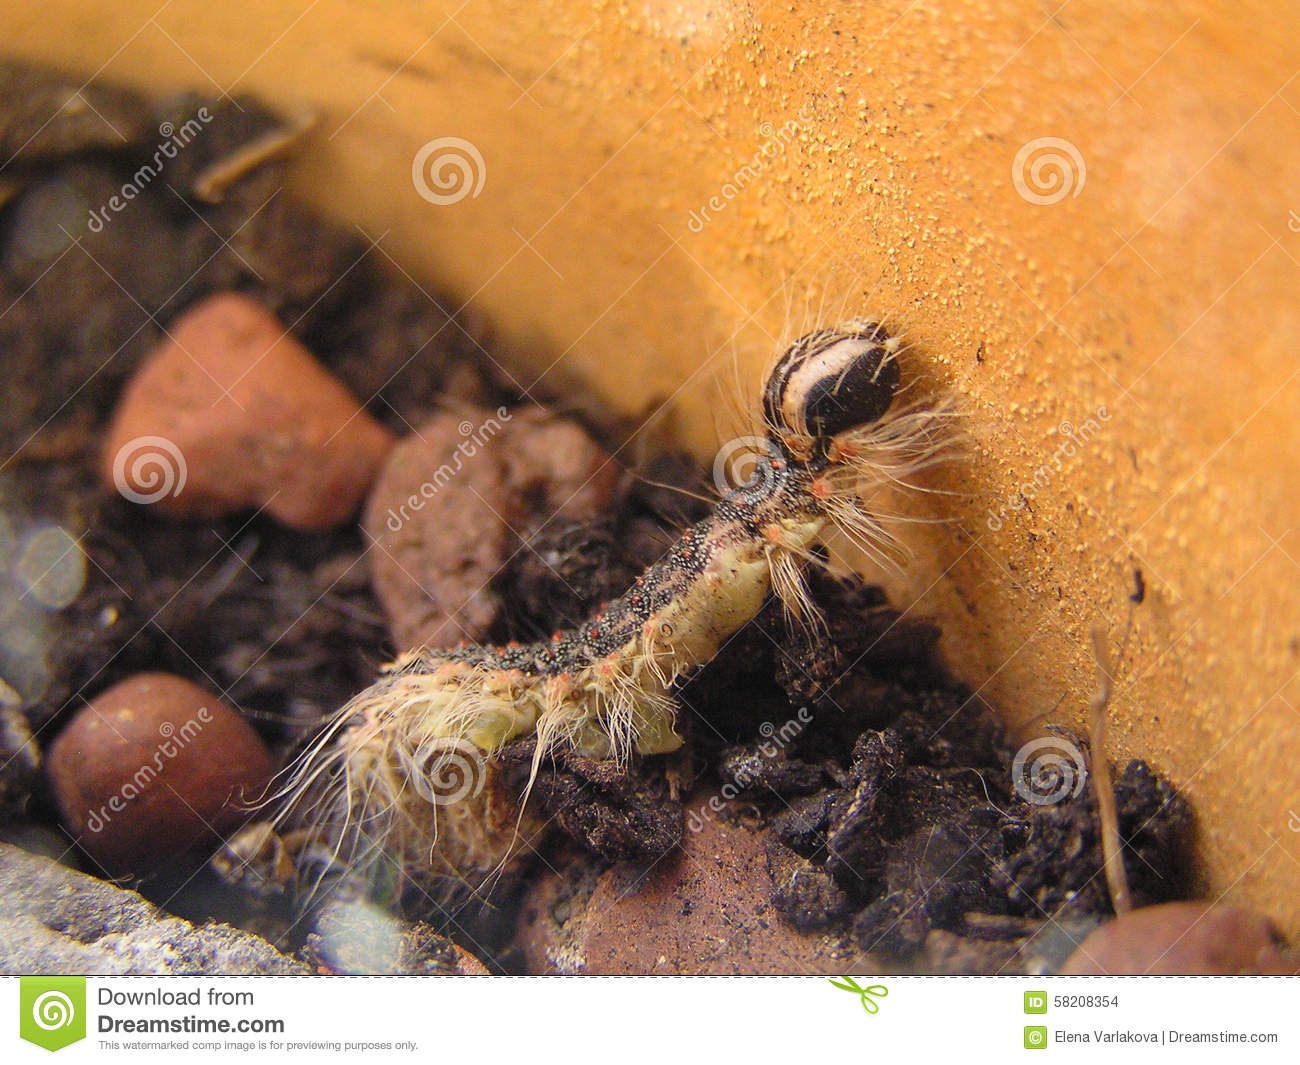 Gray Caterpillars That Are Big: Caterpillar Stock Photo. Image Of Black, Earth, Leaf